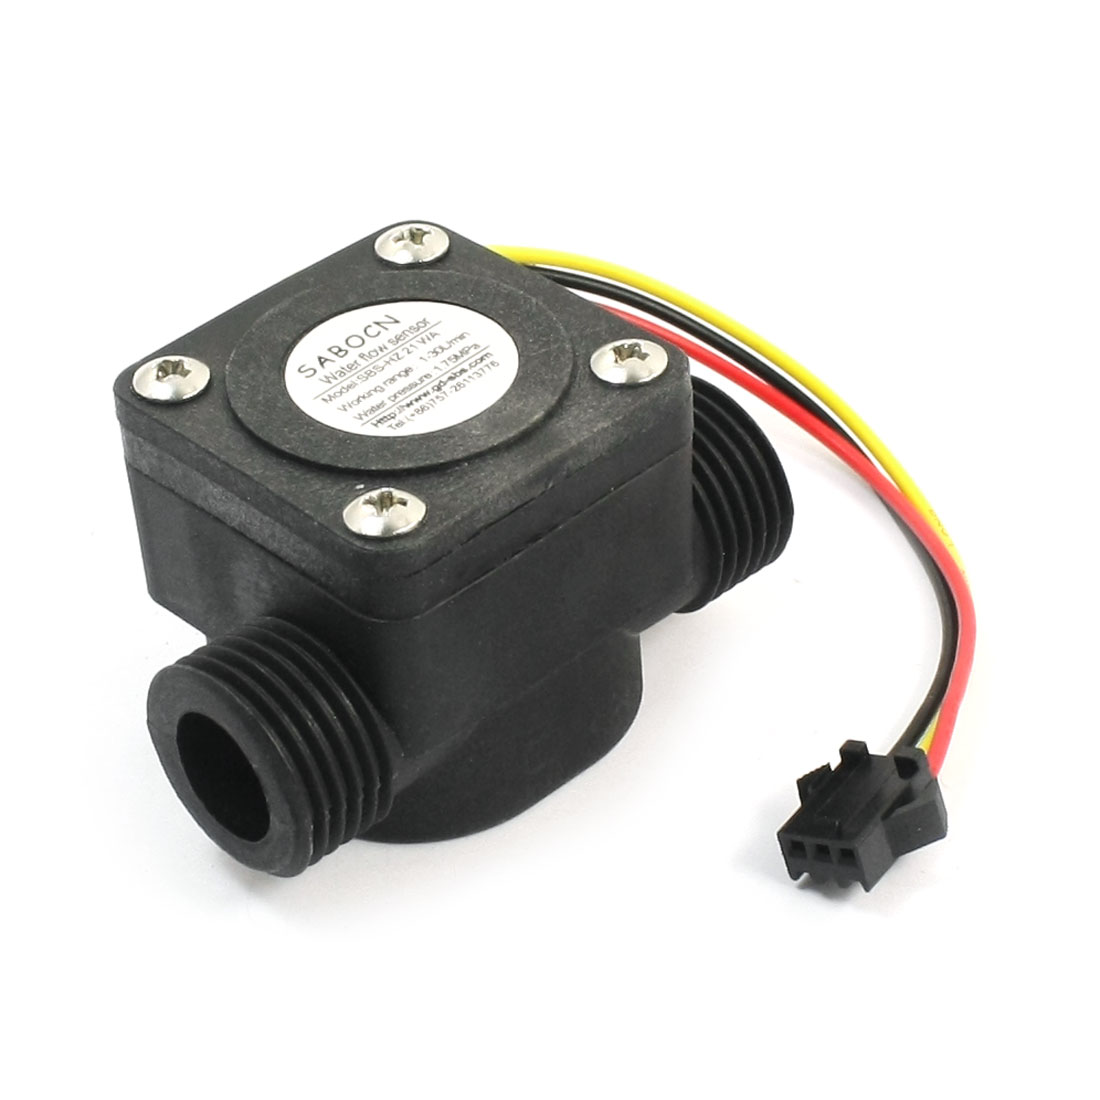 G1/2 Water Flow Hall Effect Sensor Flowmeter Counter 1-30L/min 1.75Mpa